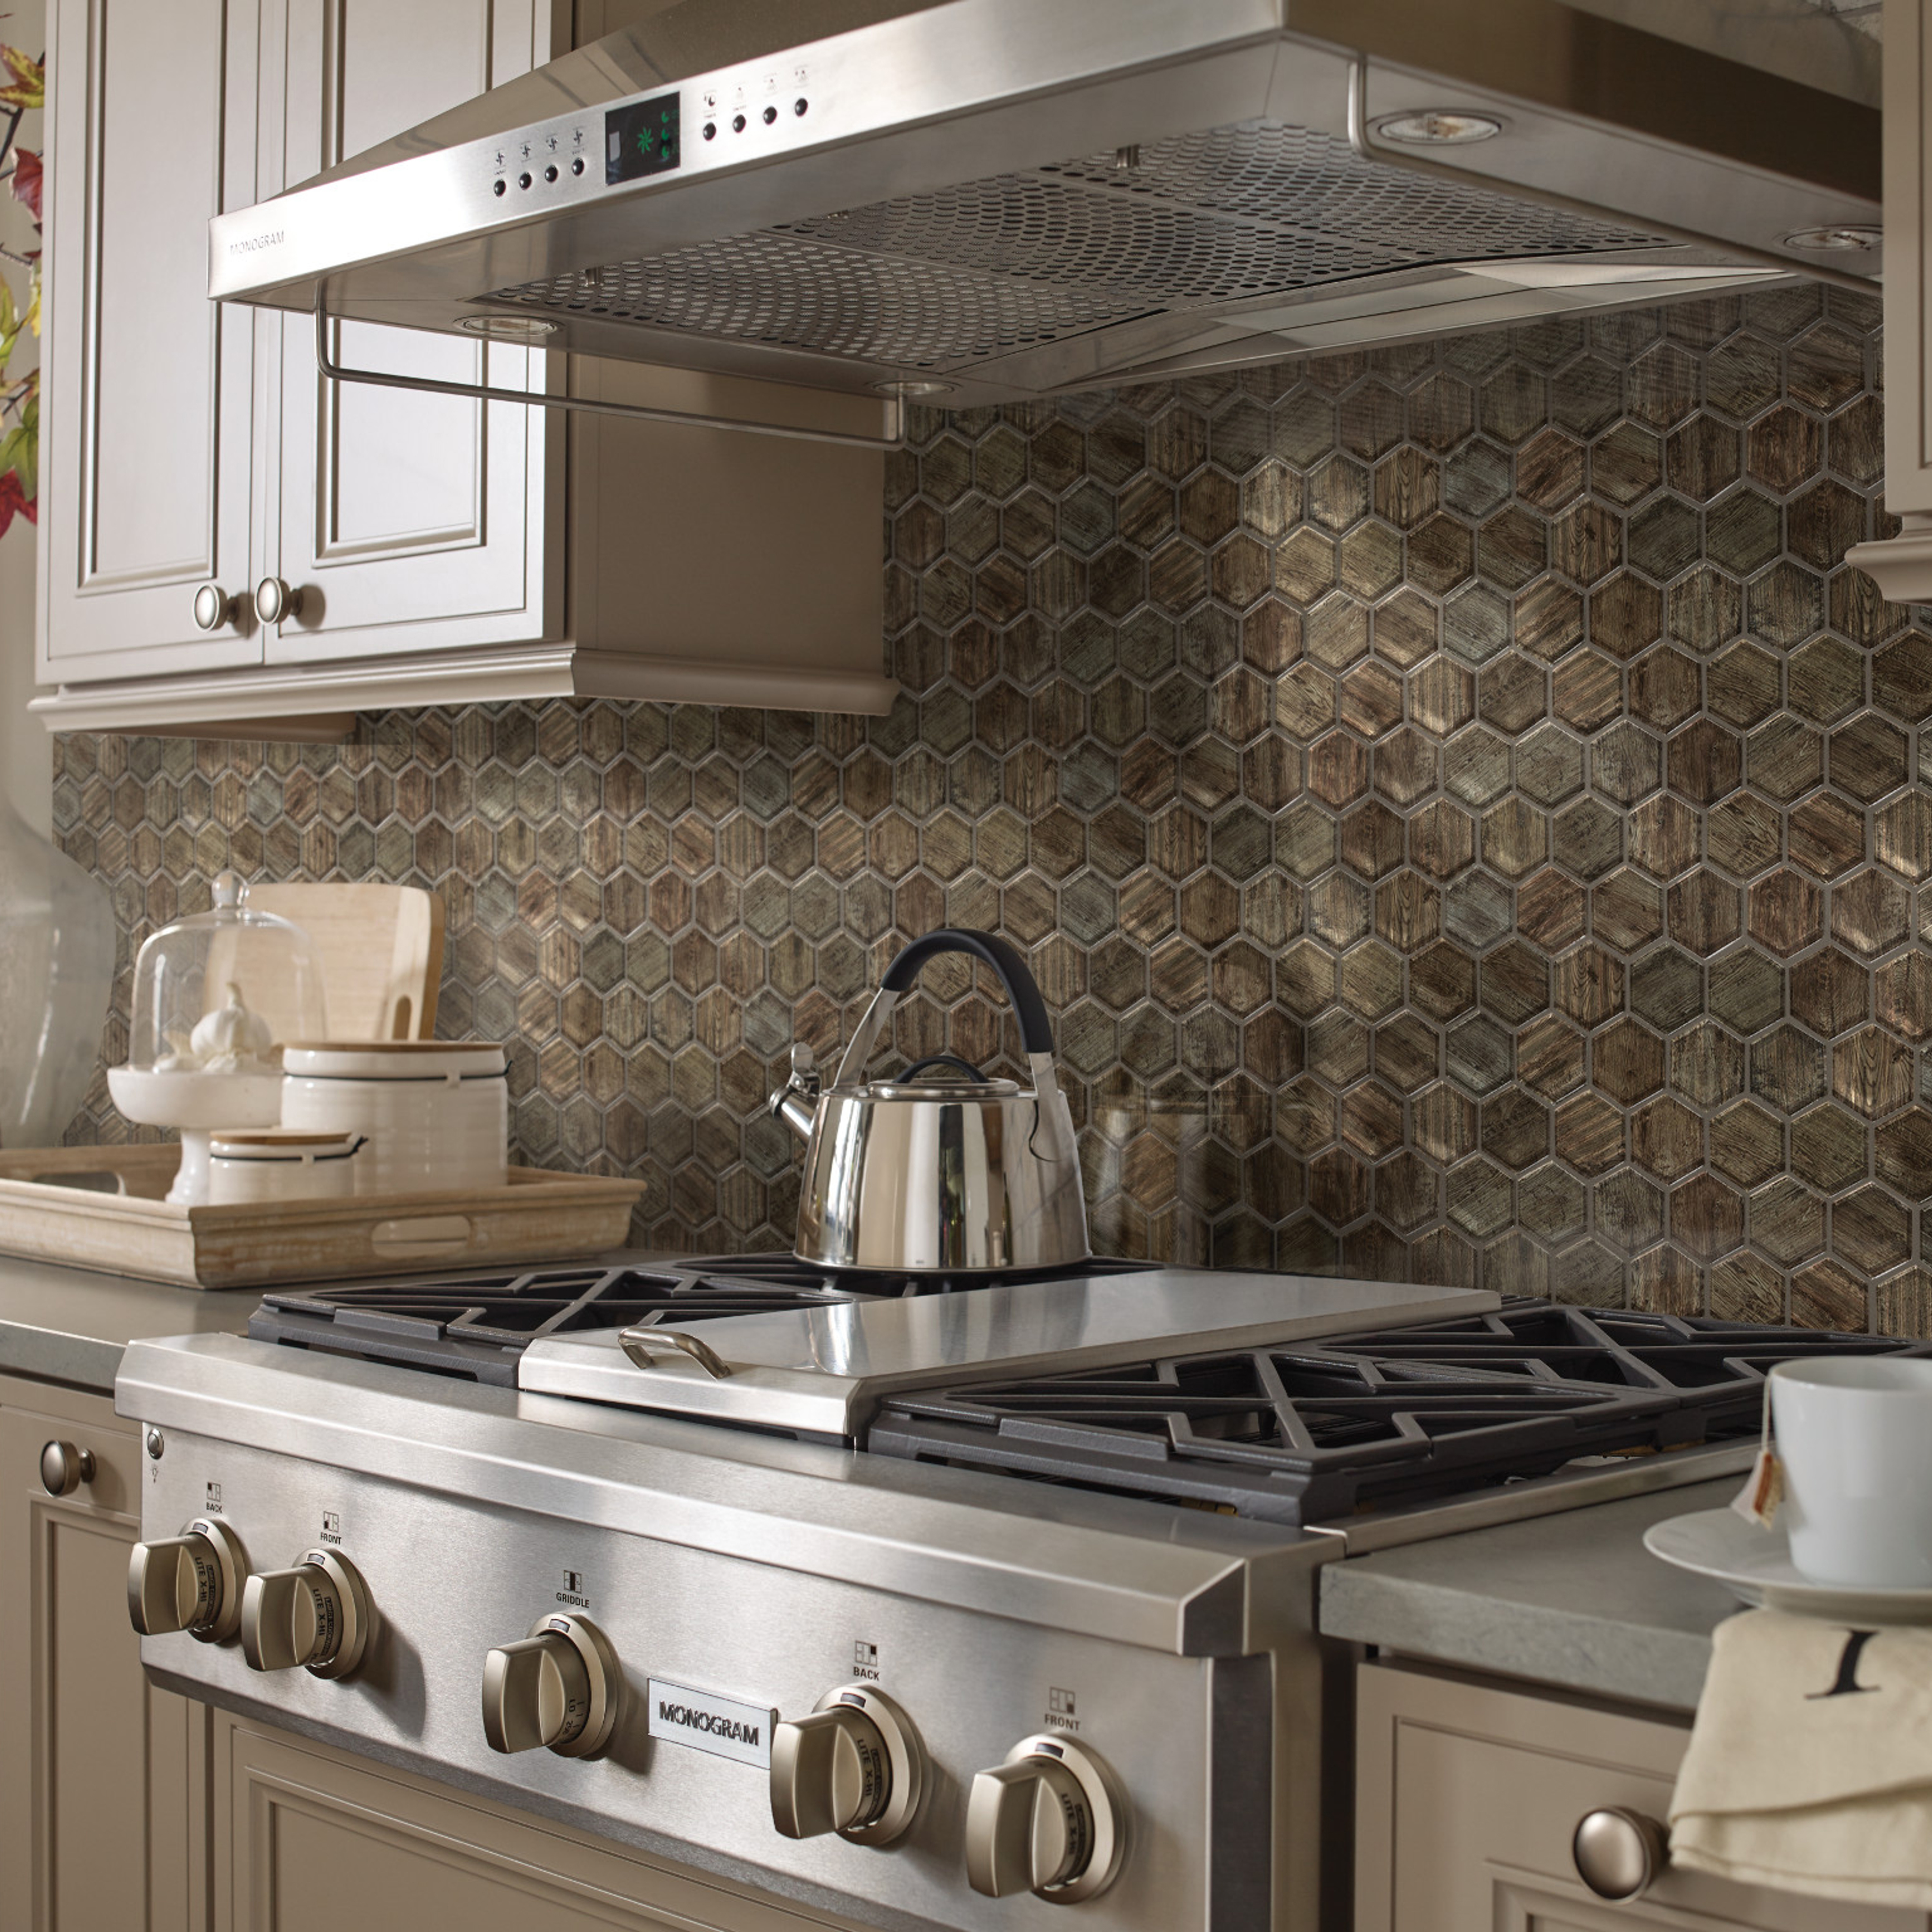 Landing – New Kitchen Update from Bomberger's